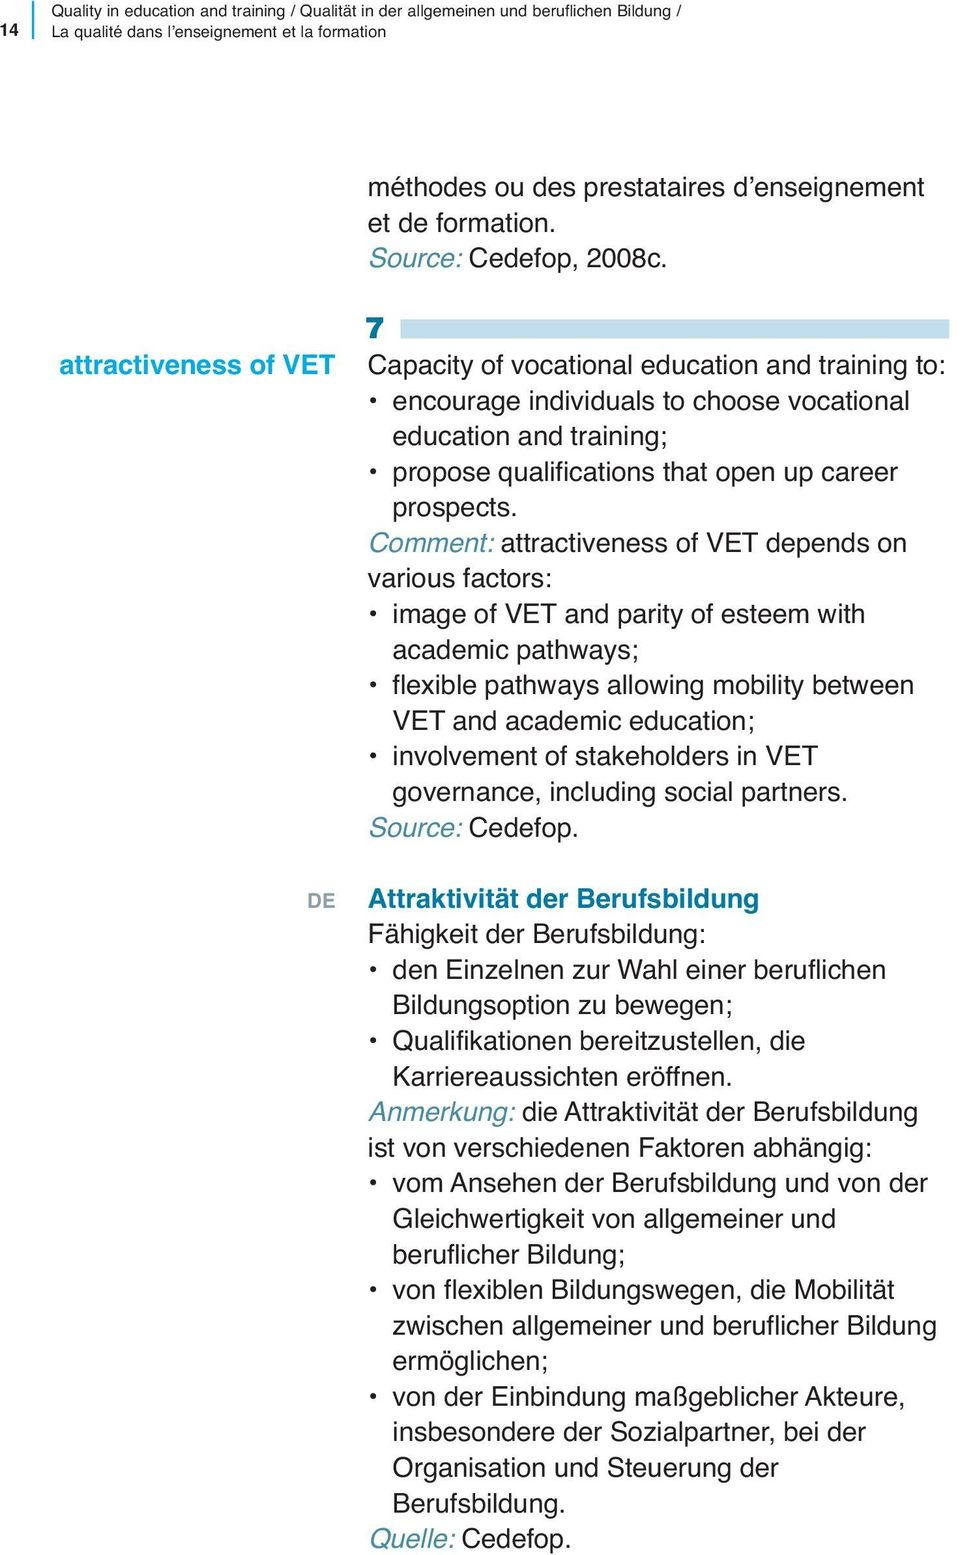 attractiveness of VET 7 Capacity of vocational education and training to: encourage individuals to choose vocational education and training; propose qualifications that open up career prospects.